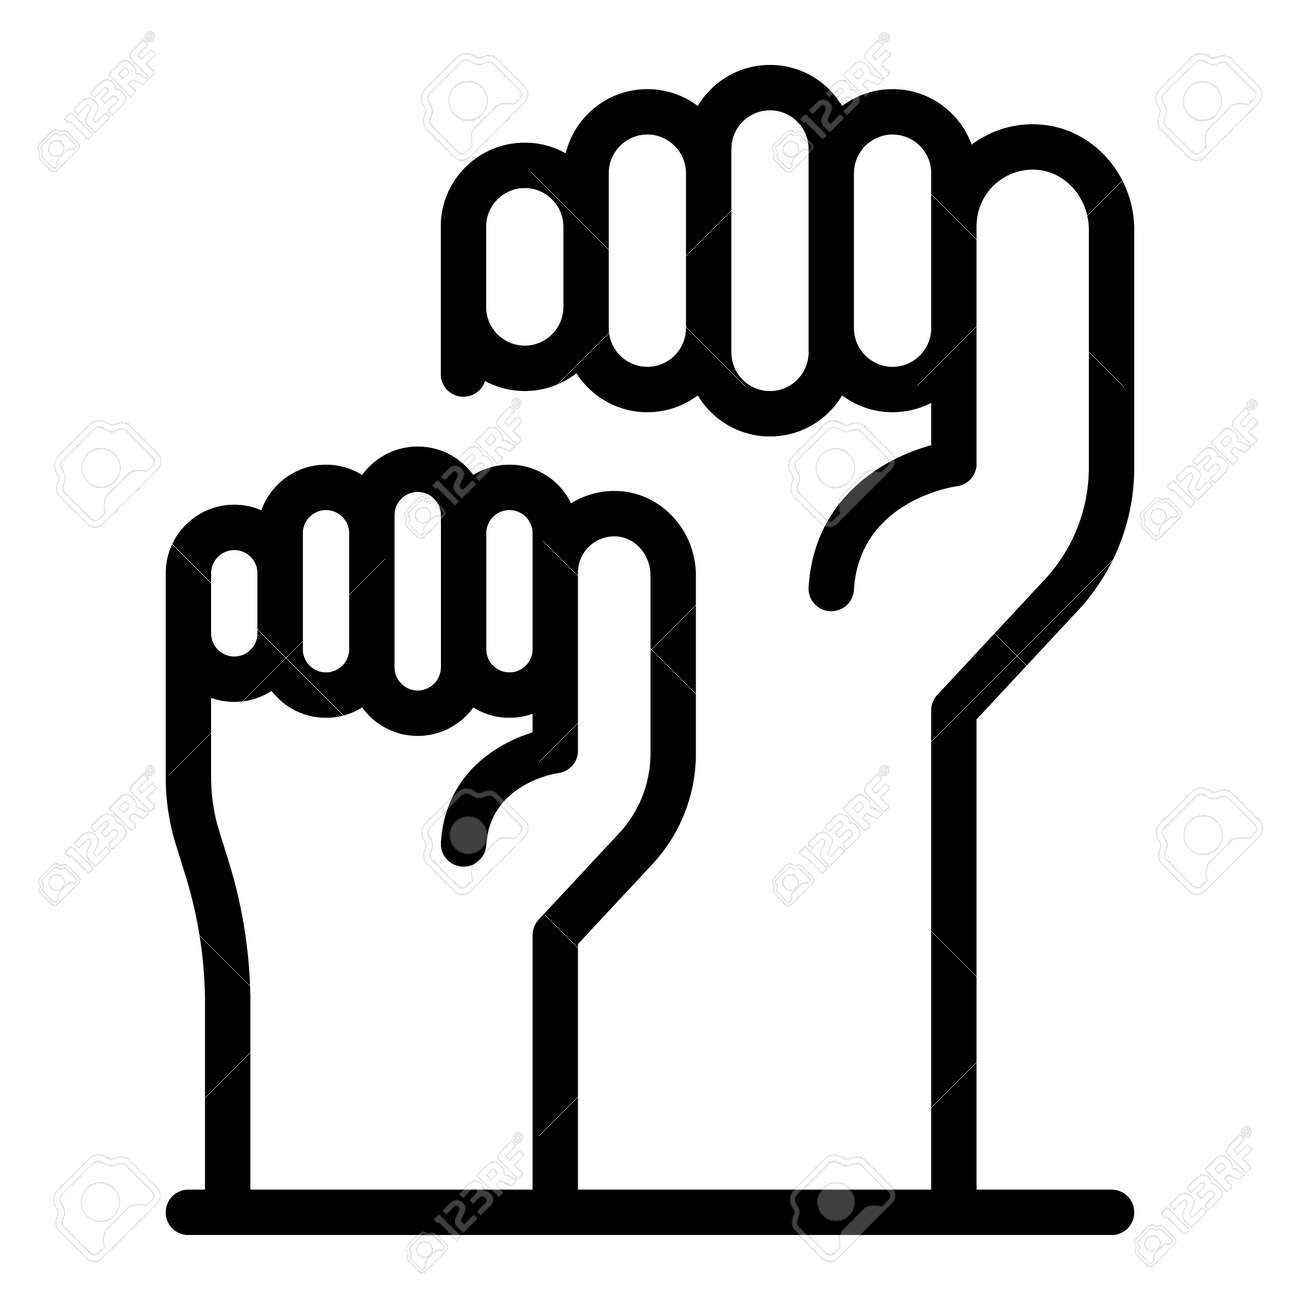 Fist empowerment icon, outline style - 153300754